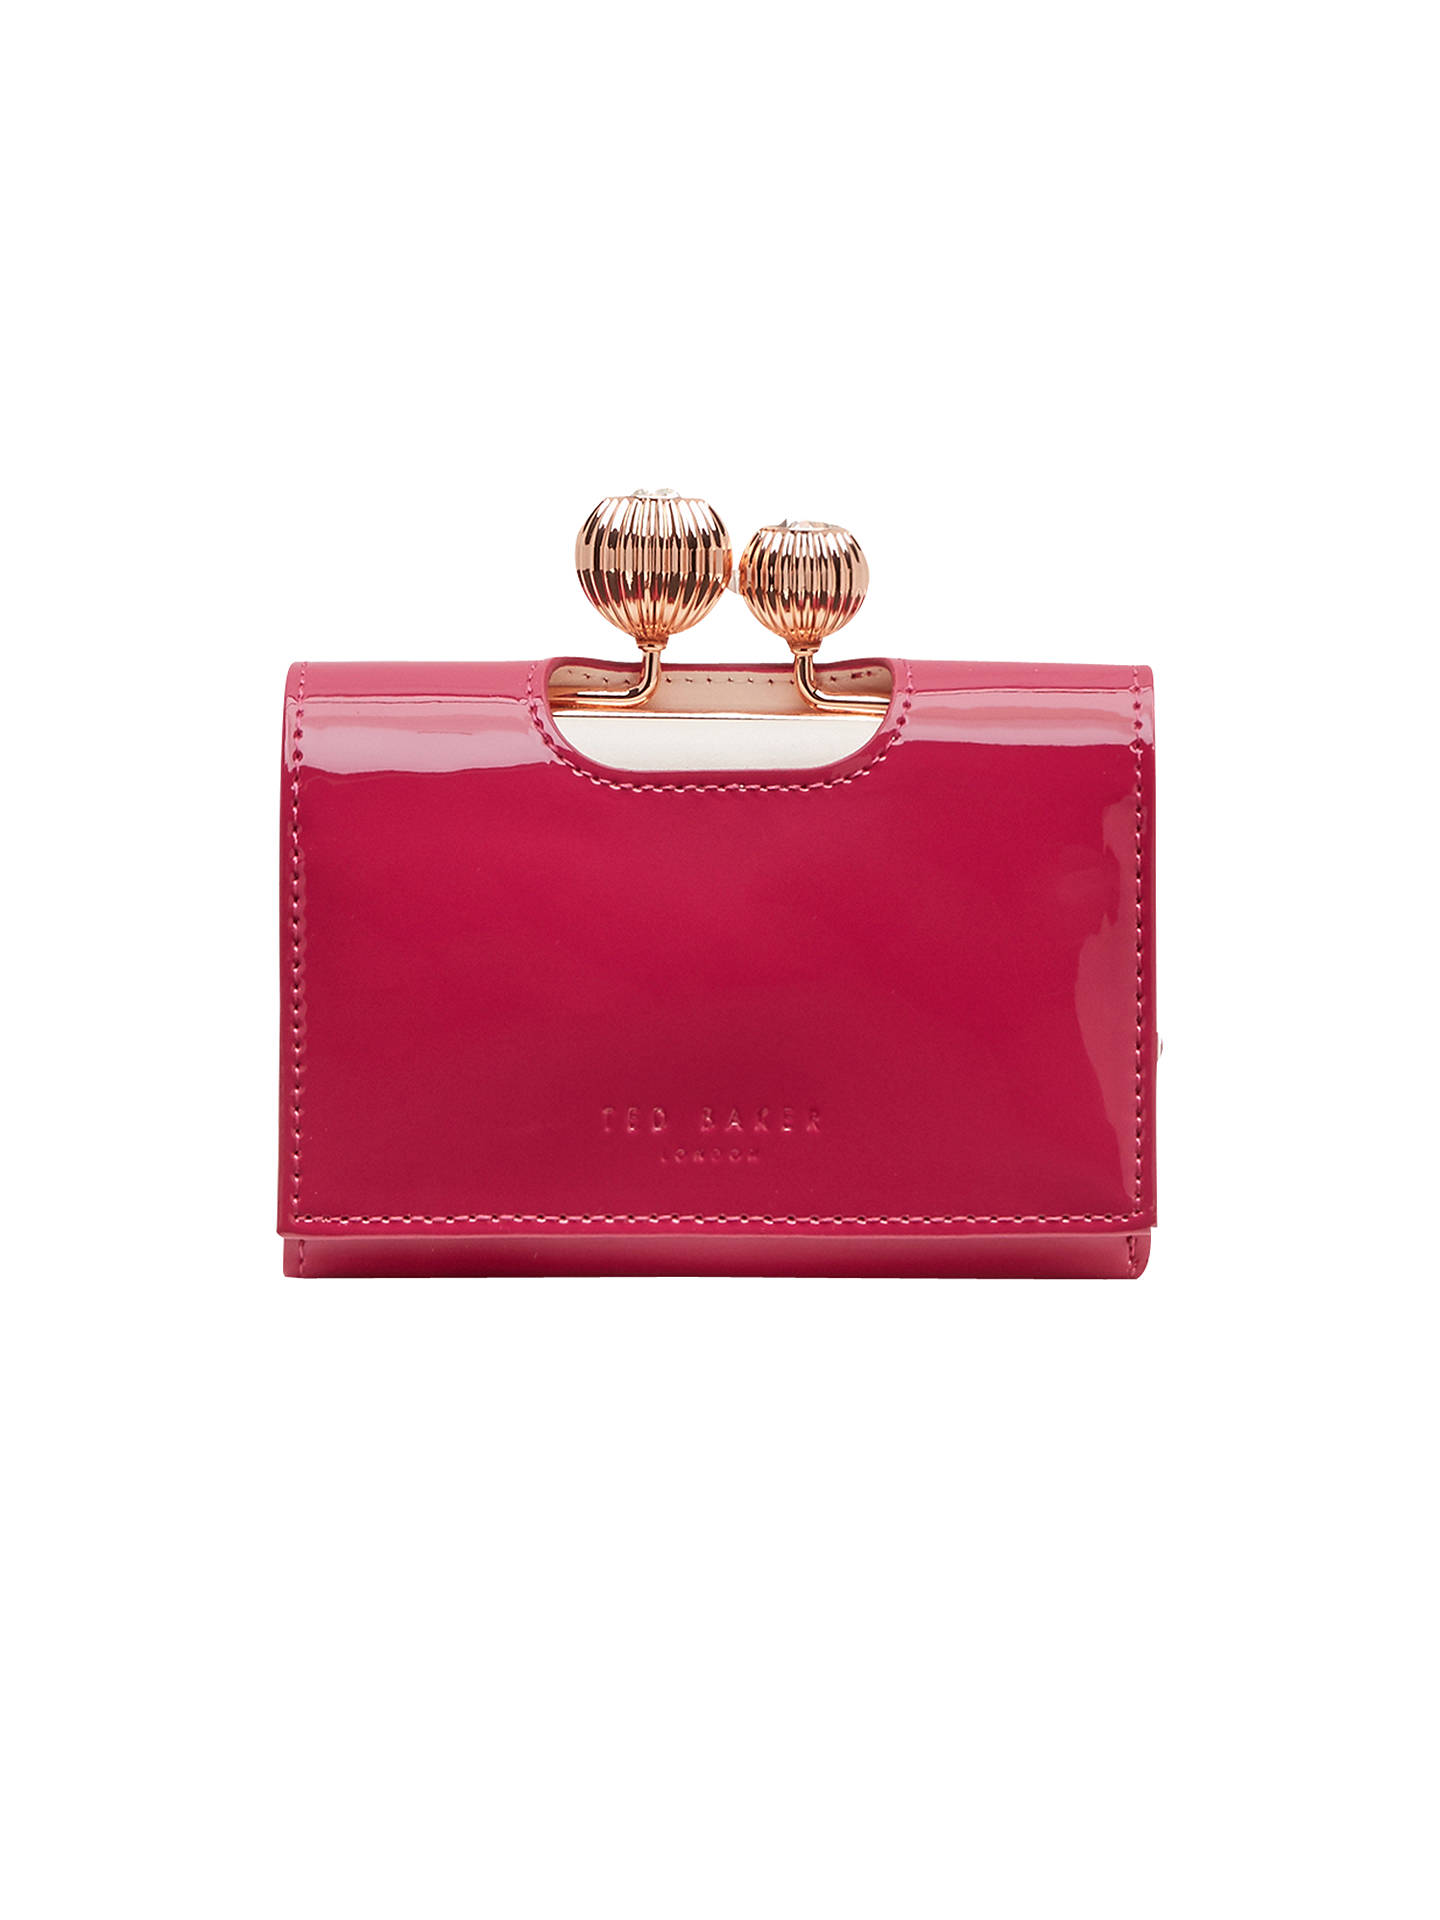 b981743b72ab11 Ted Baker Julissa Small Patent Leather Purse at John Lewis   Partners